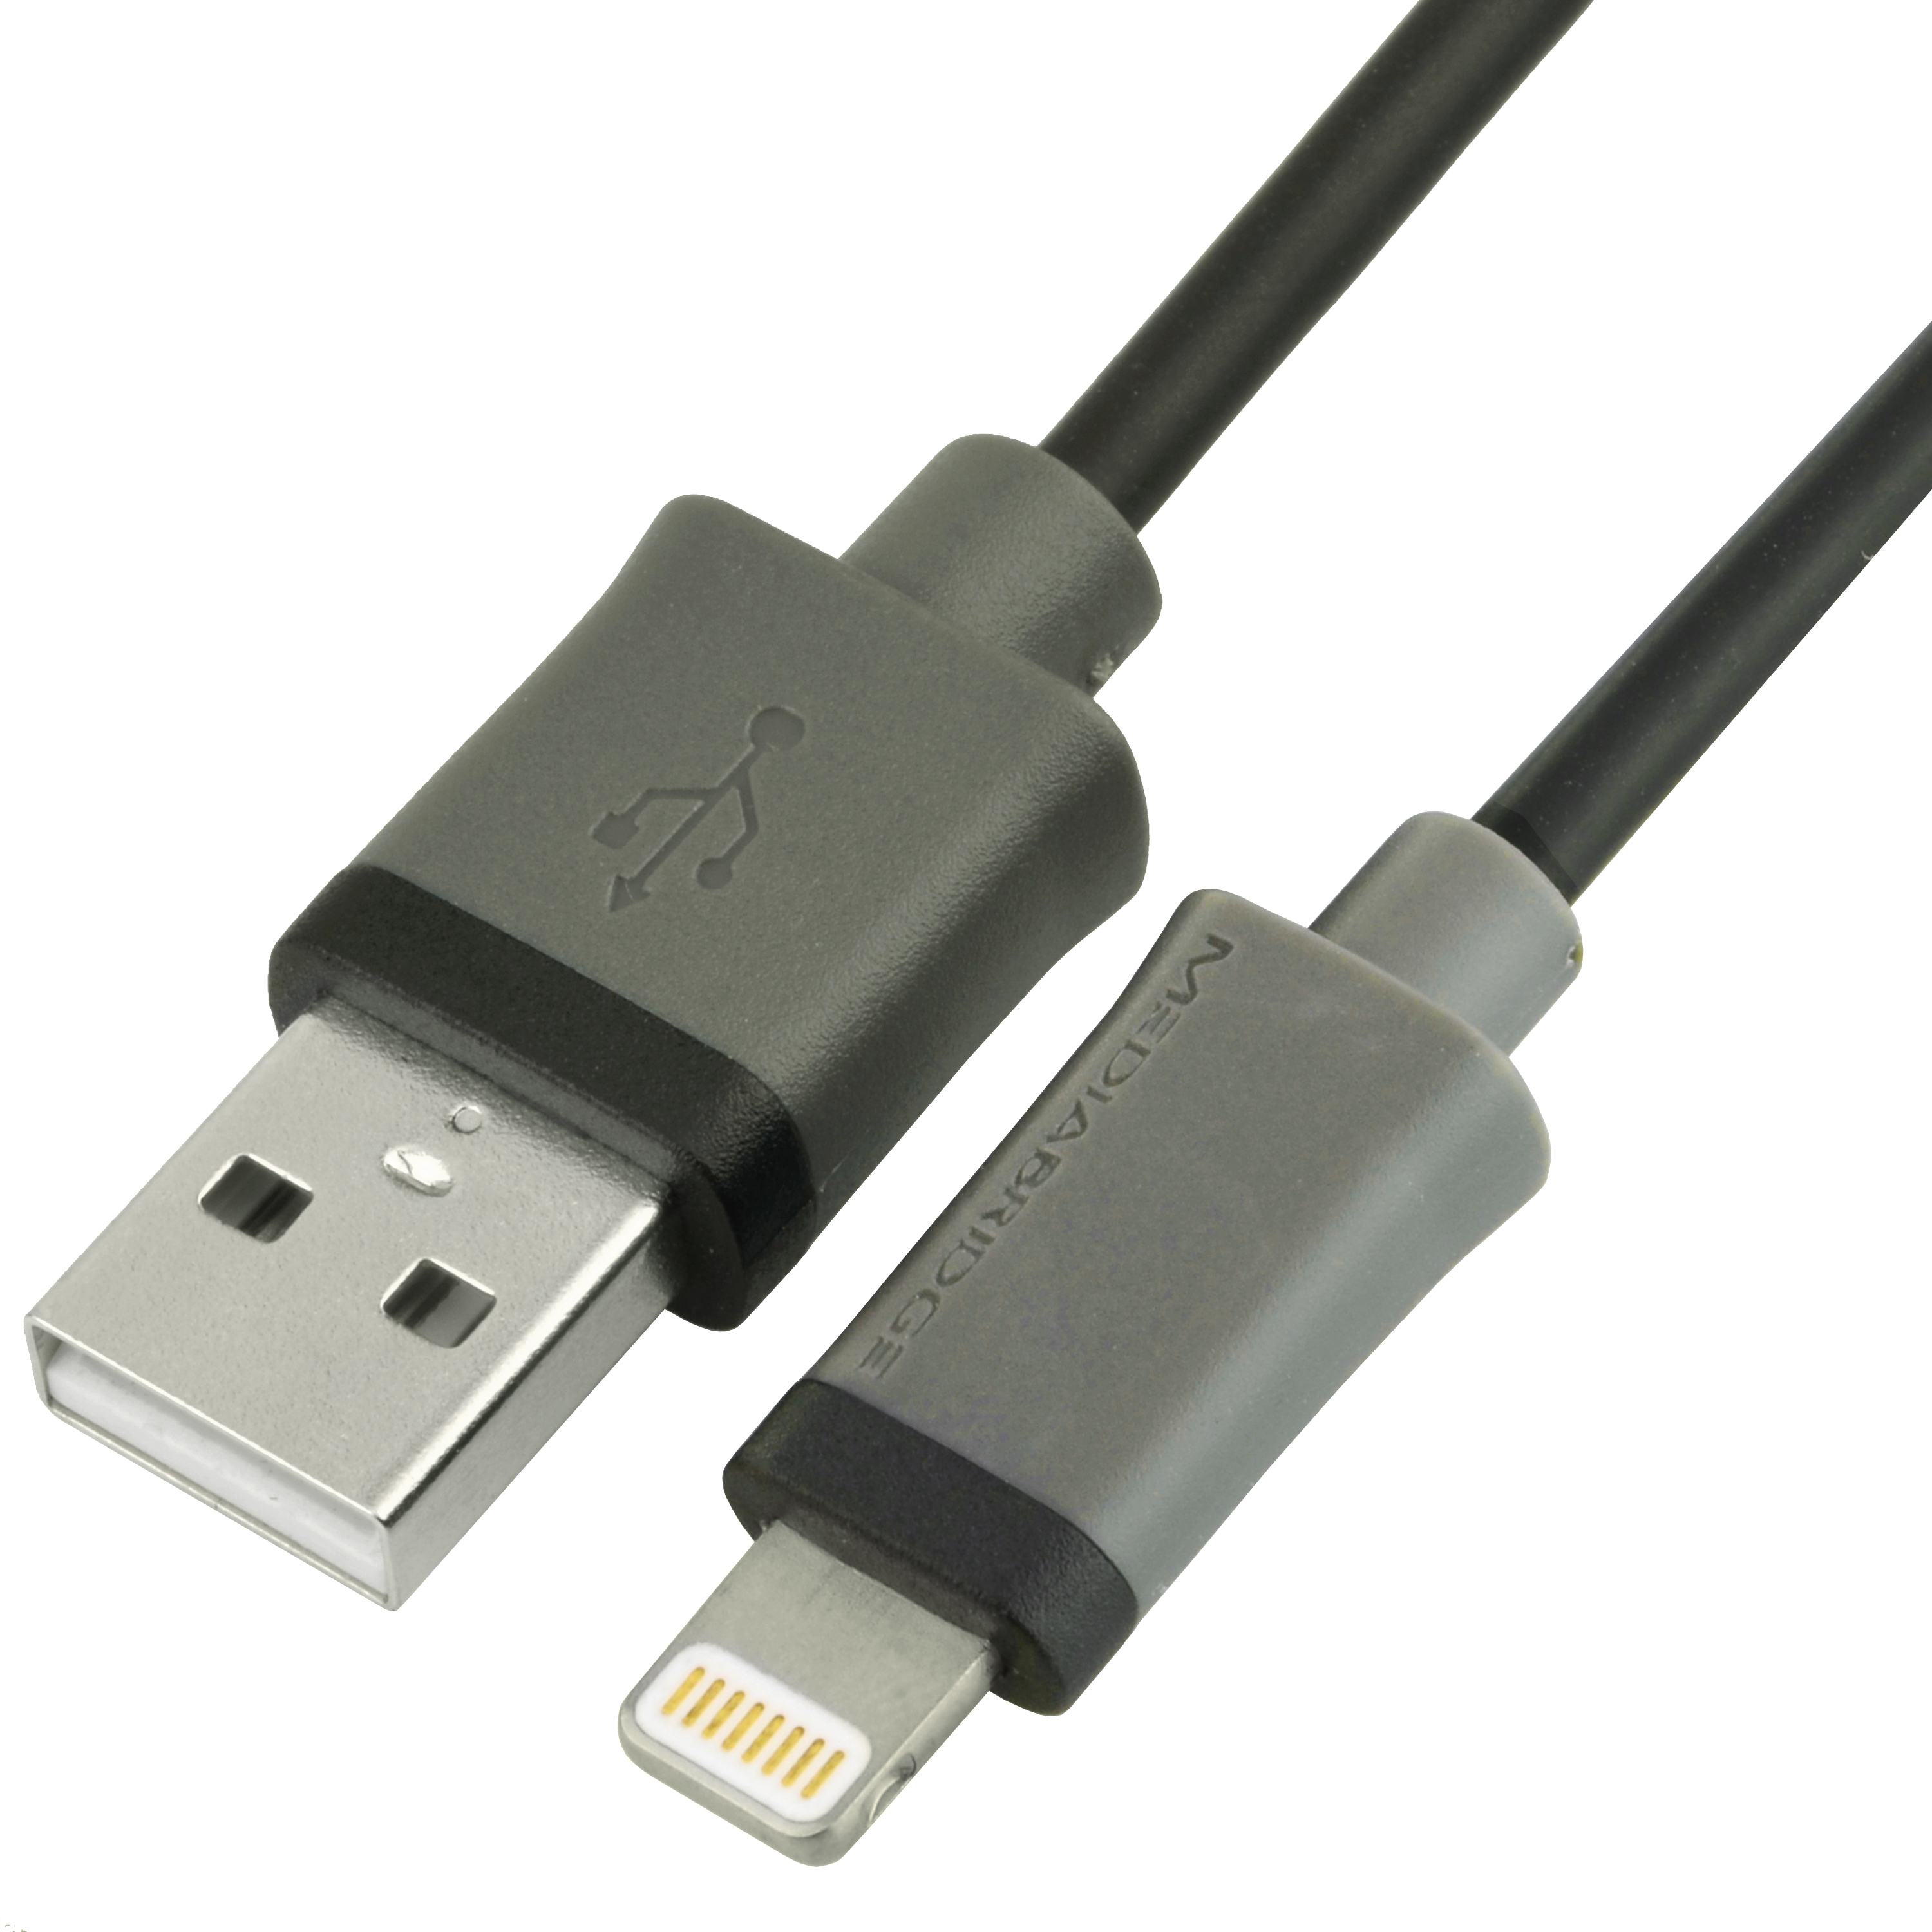 Shop New Apple Mfi Certified Lightning To Usb Cable  Black